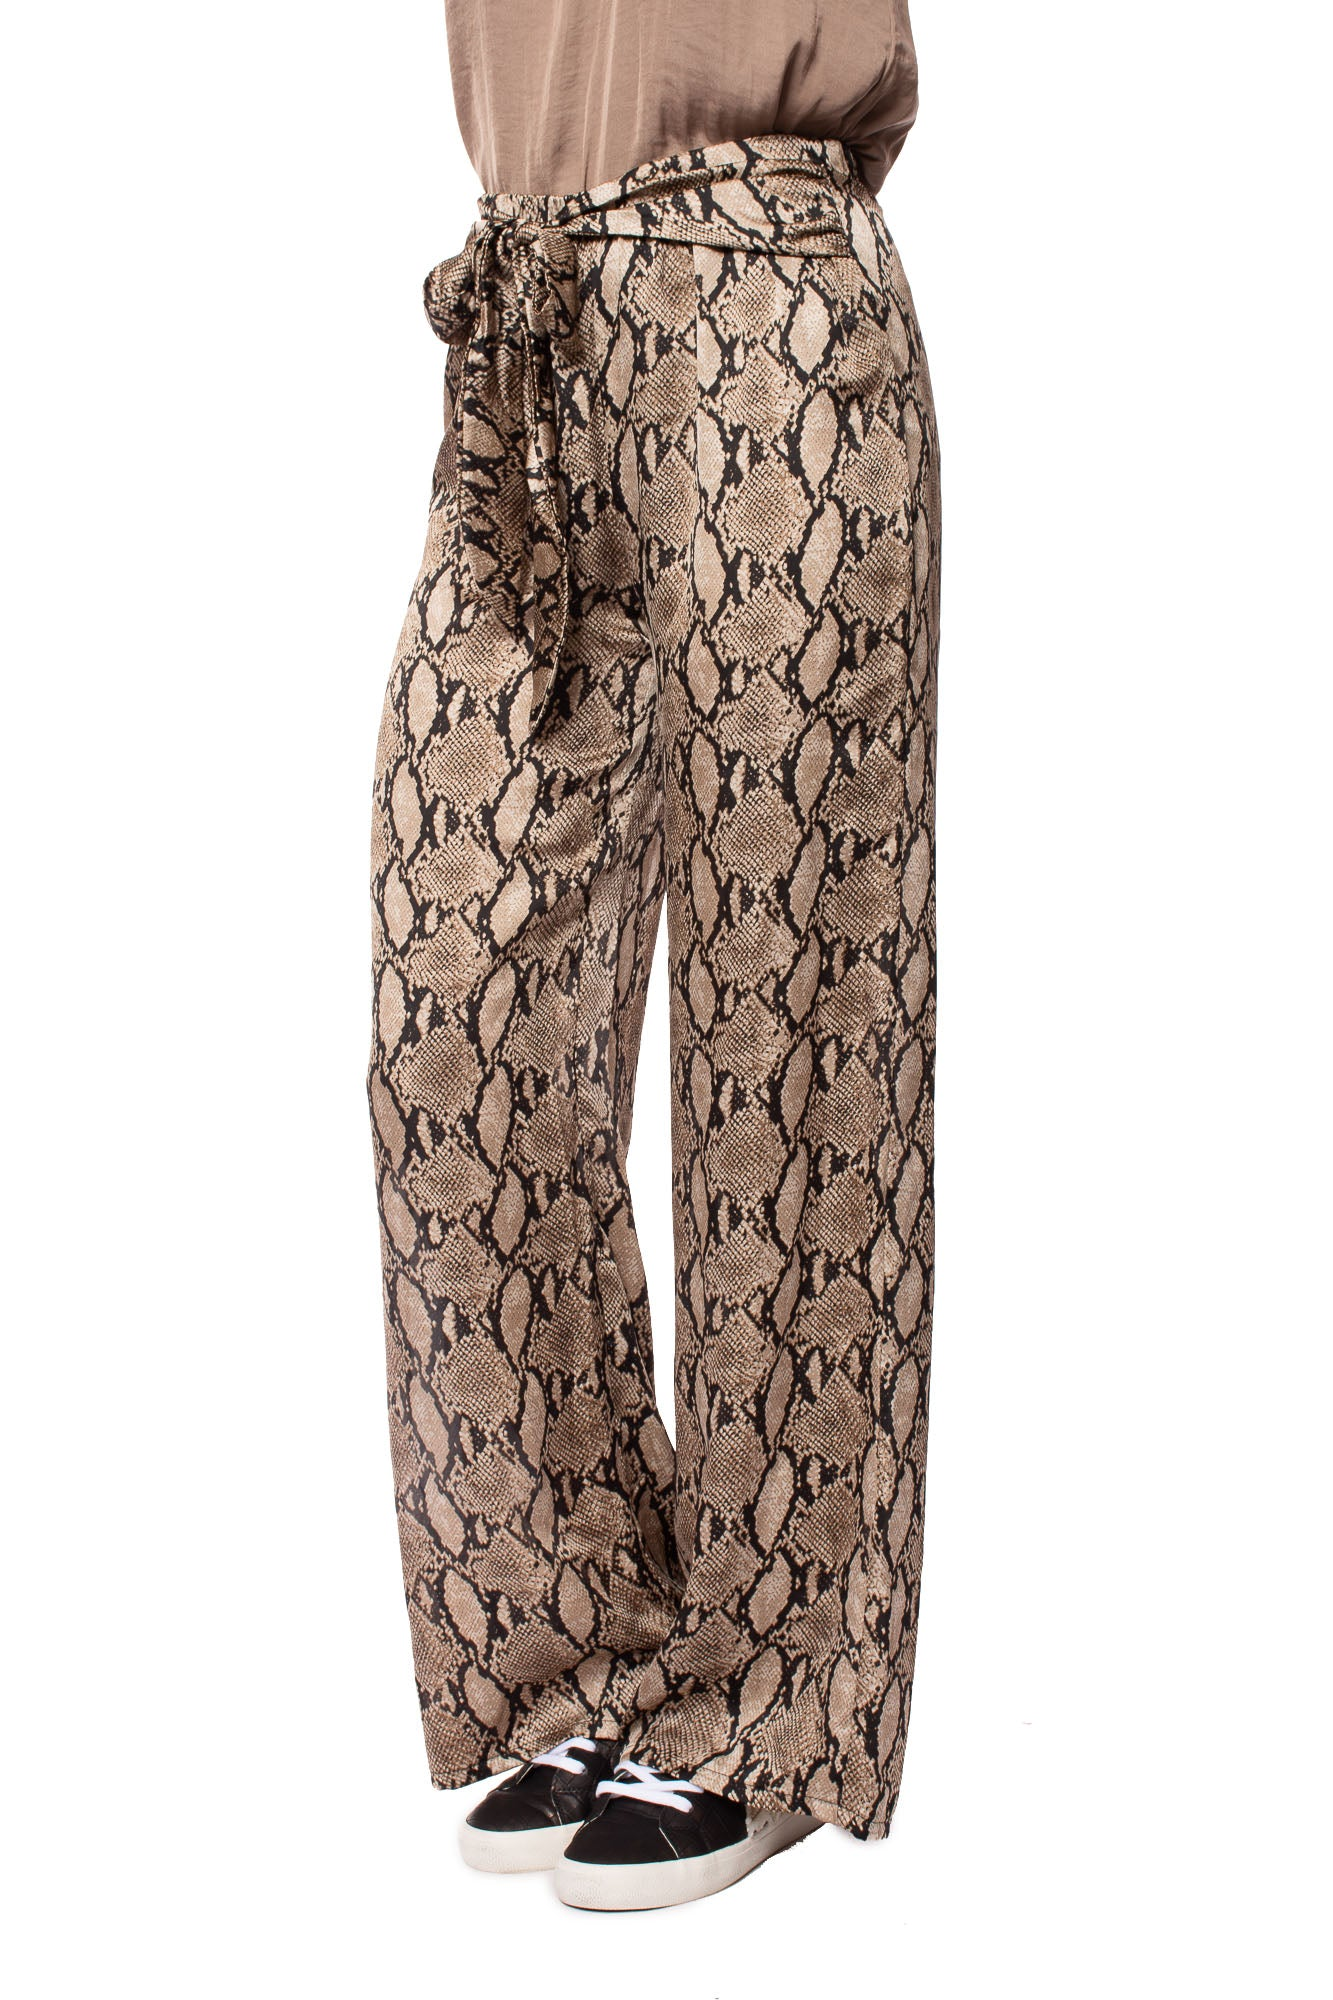 KLK Clothing Co. - Satin Snake Skin Pattern Pants (KD60154, Snake Skin)